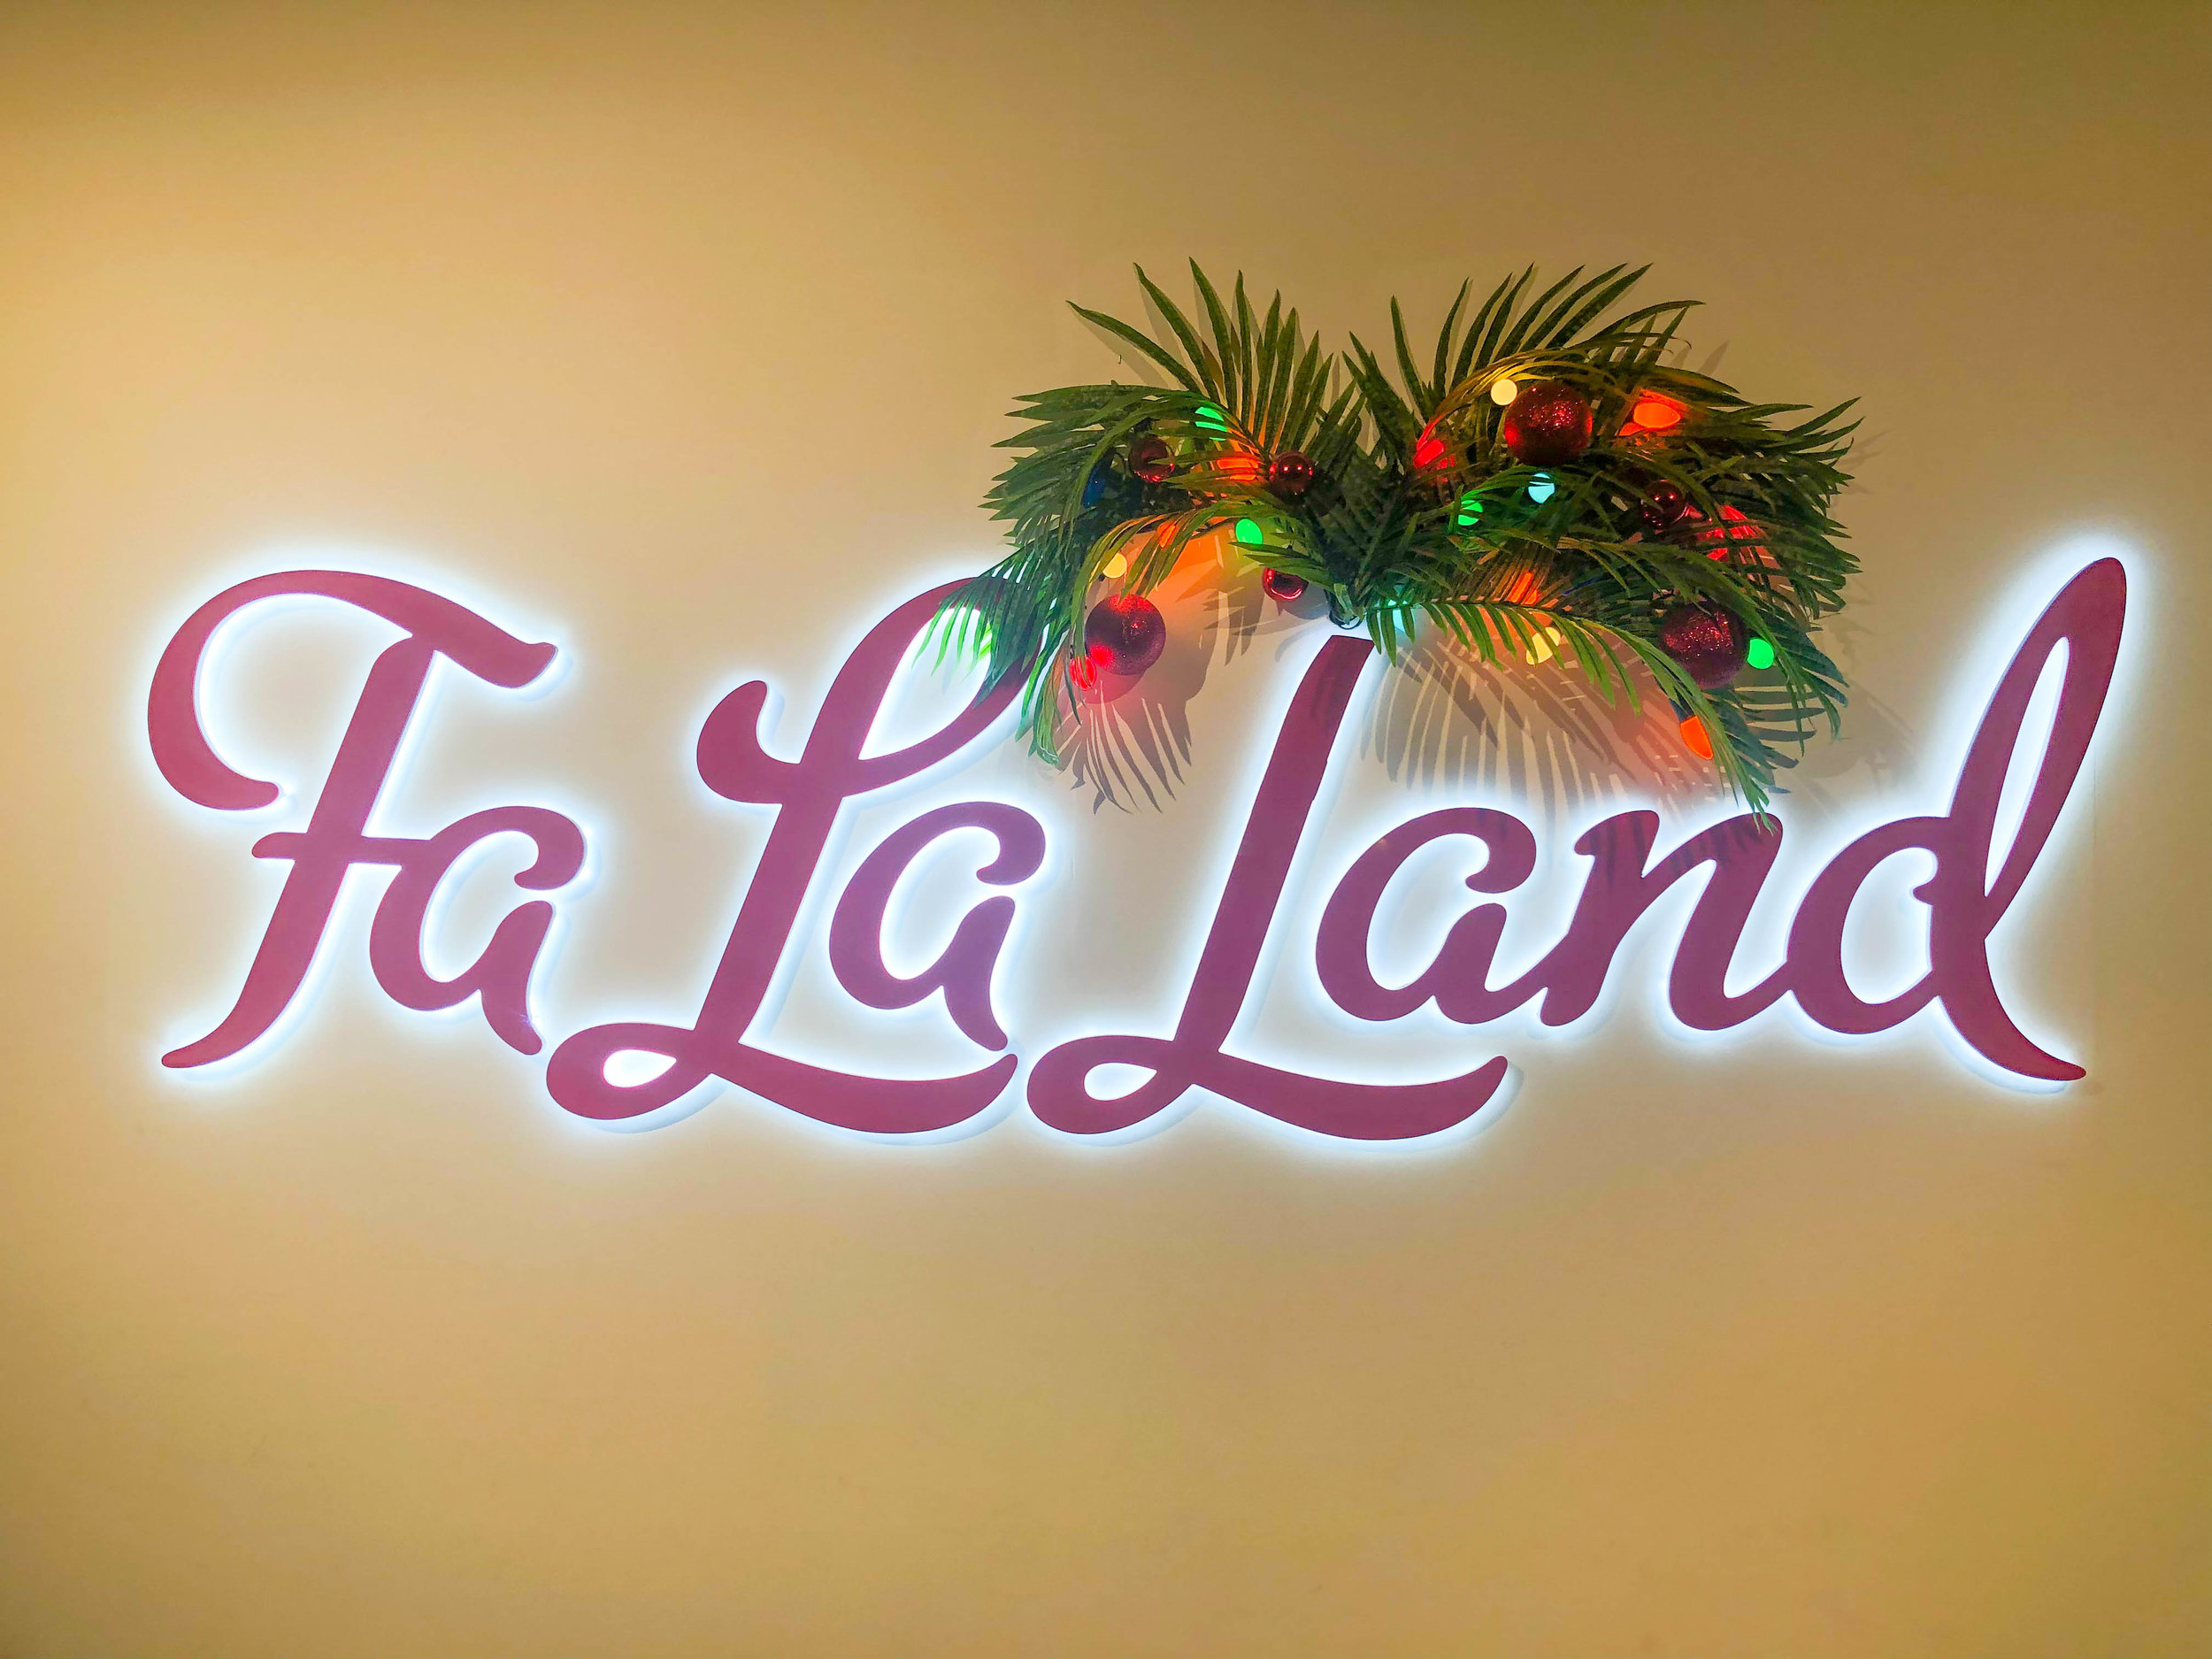 Fa la land - Christmas Pop-up in Downtown LA